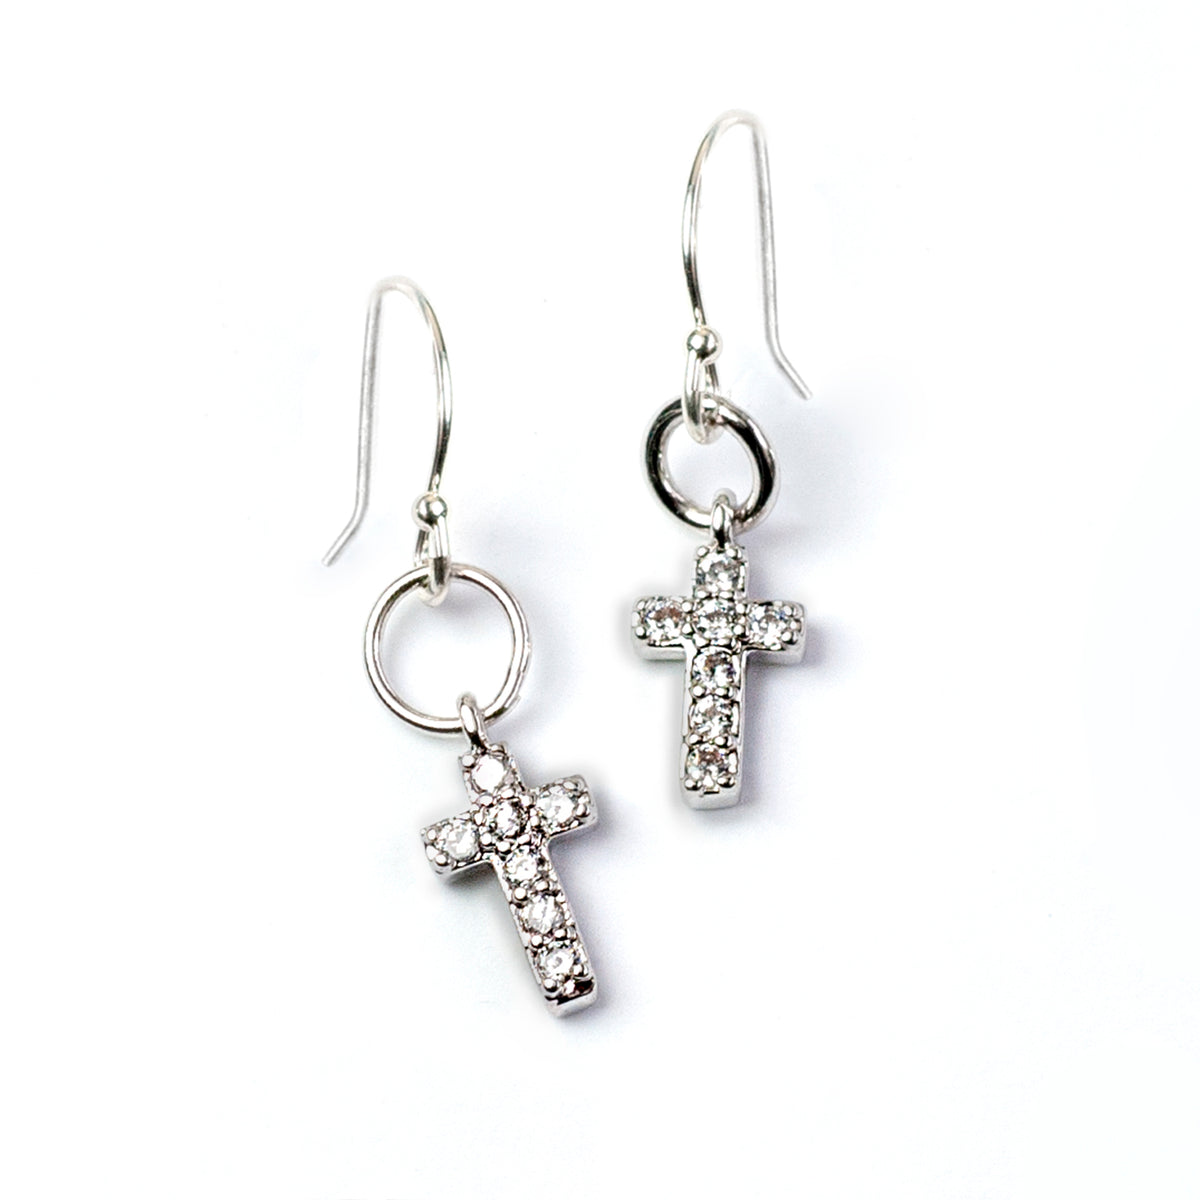 Tiny Cross Earrings E1513 - Sweet Romance Wholesale